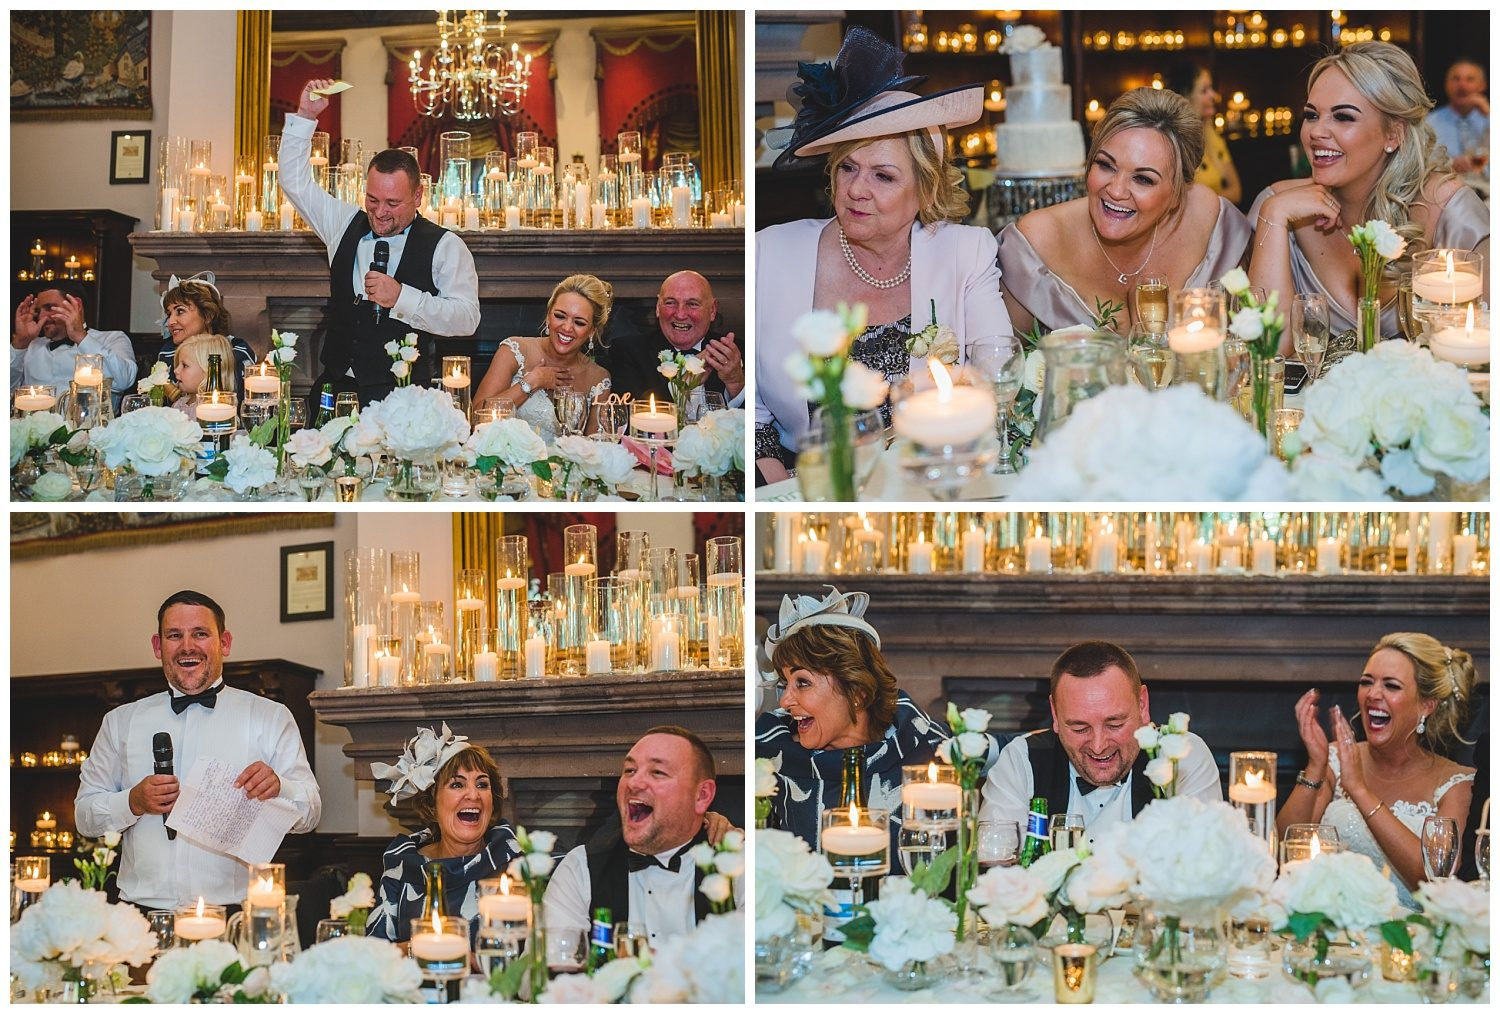 Guests laughing at the wedding speeches at Peckforton Castle